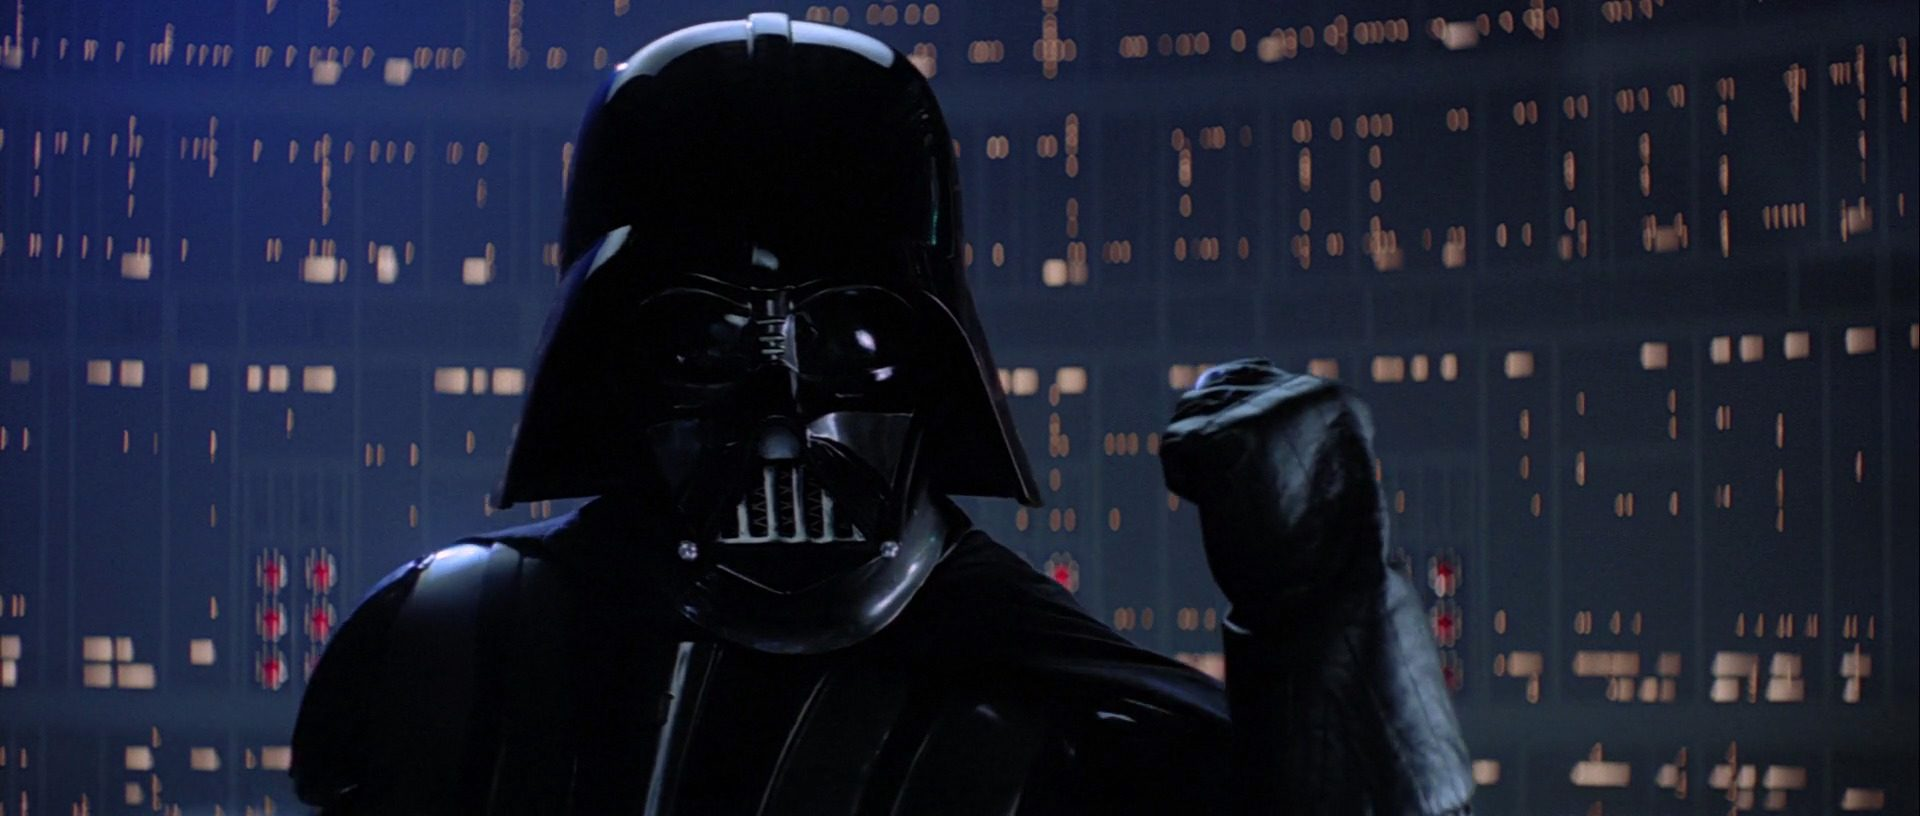 May The Force Be With You! 'The Empire Strikes Back' Returns to Theaters for its 40th Anniversary!